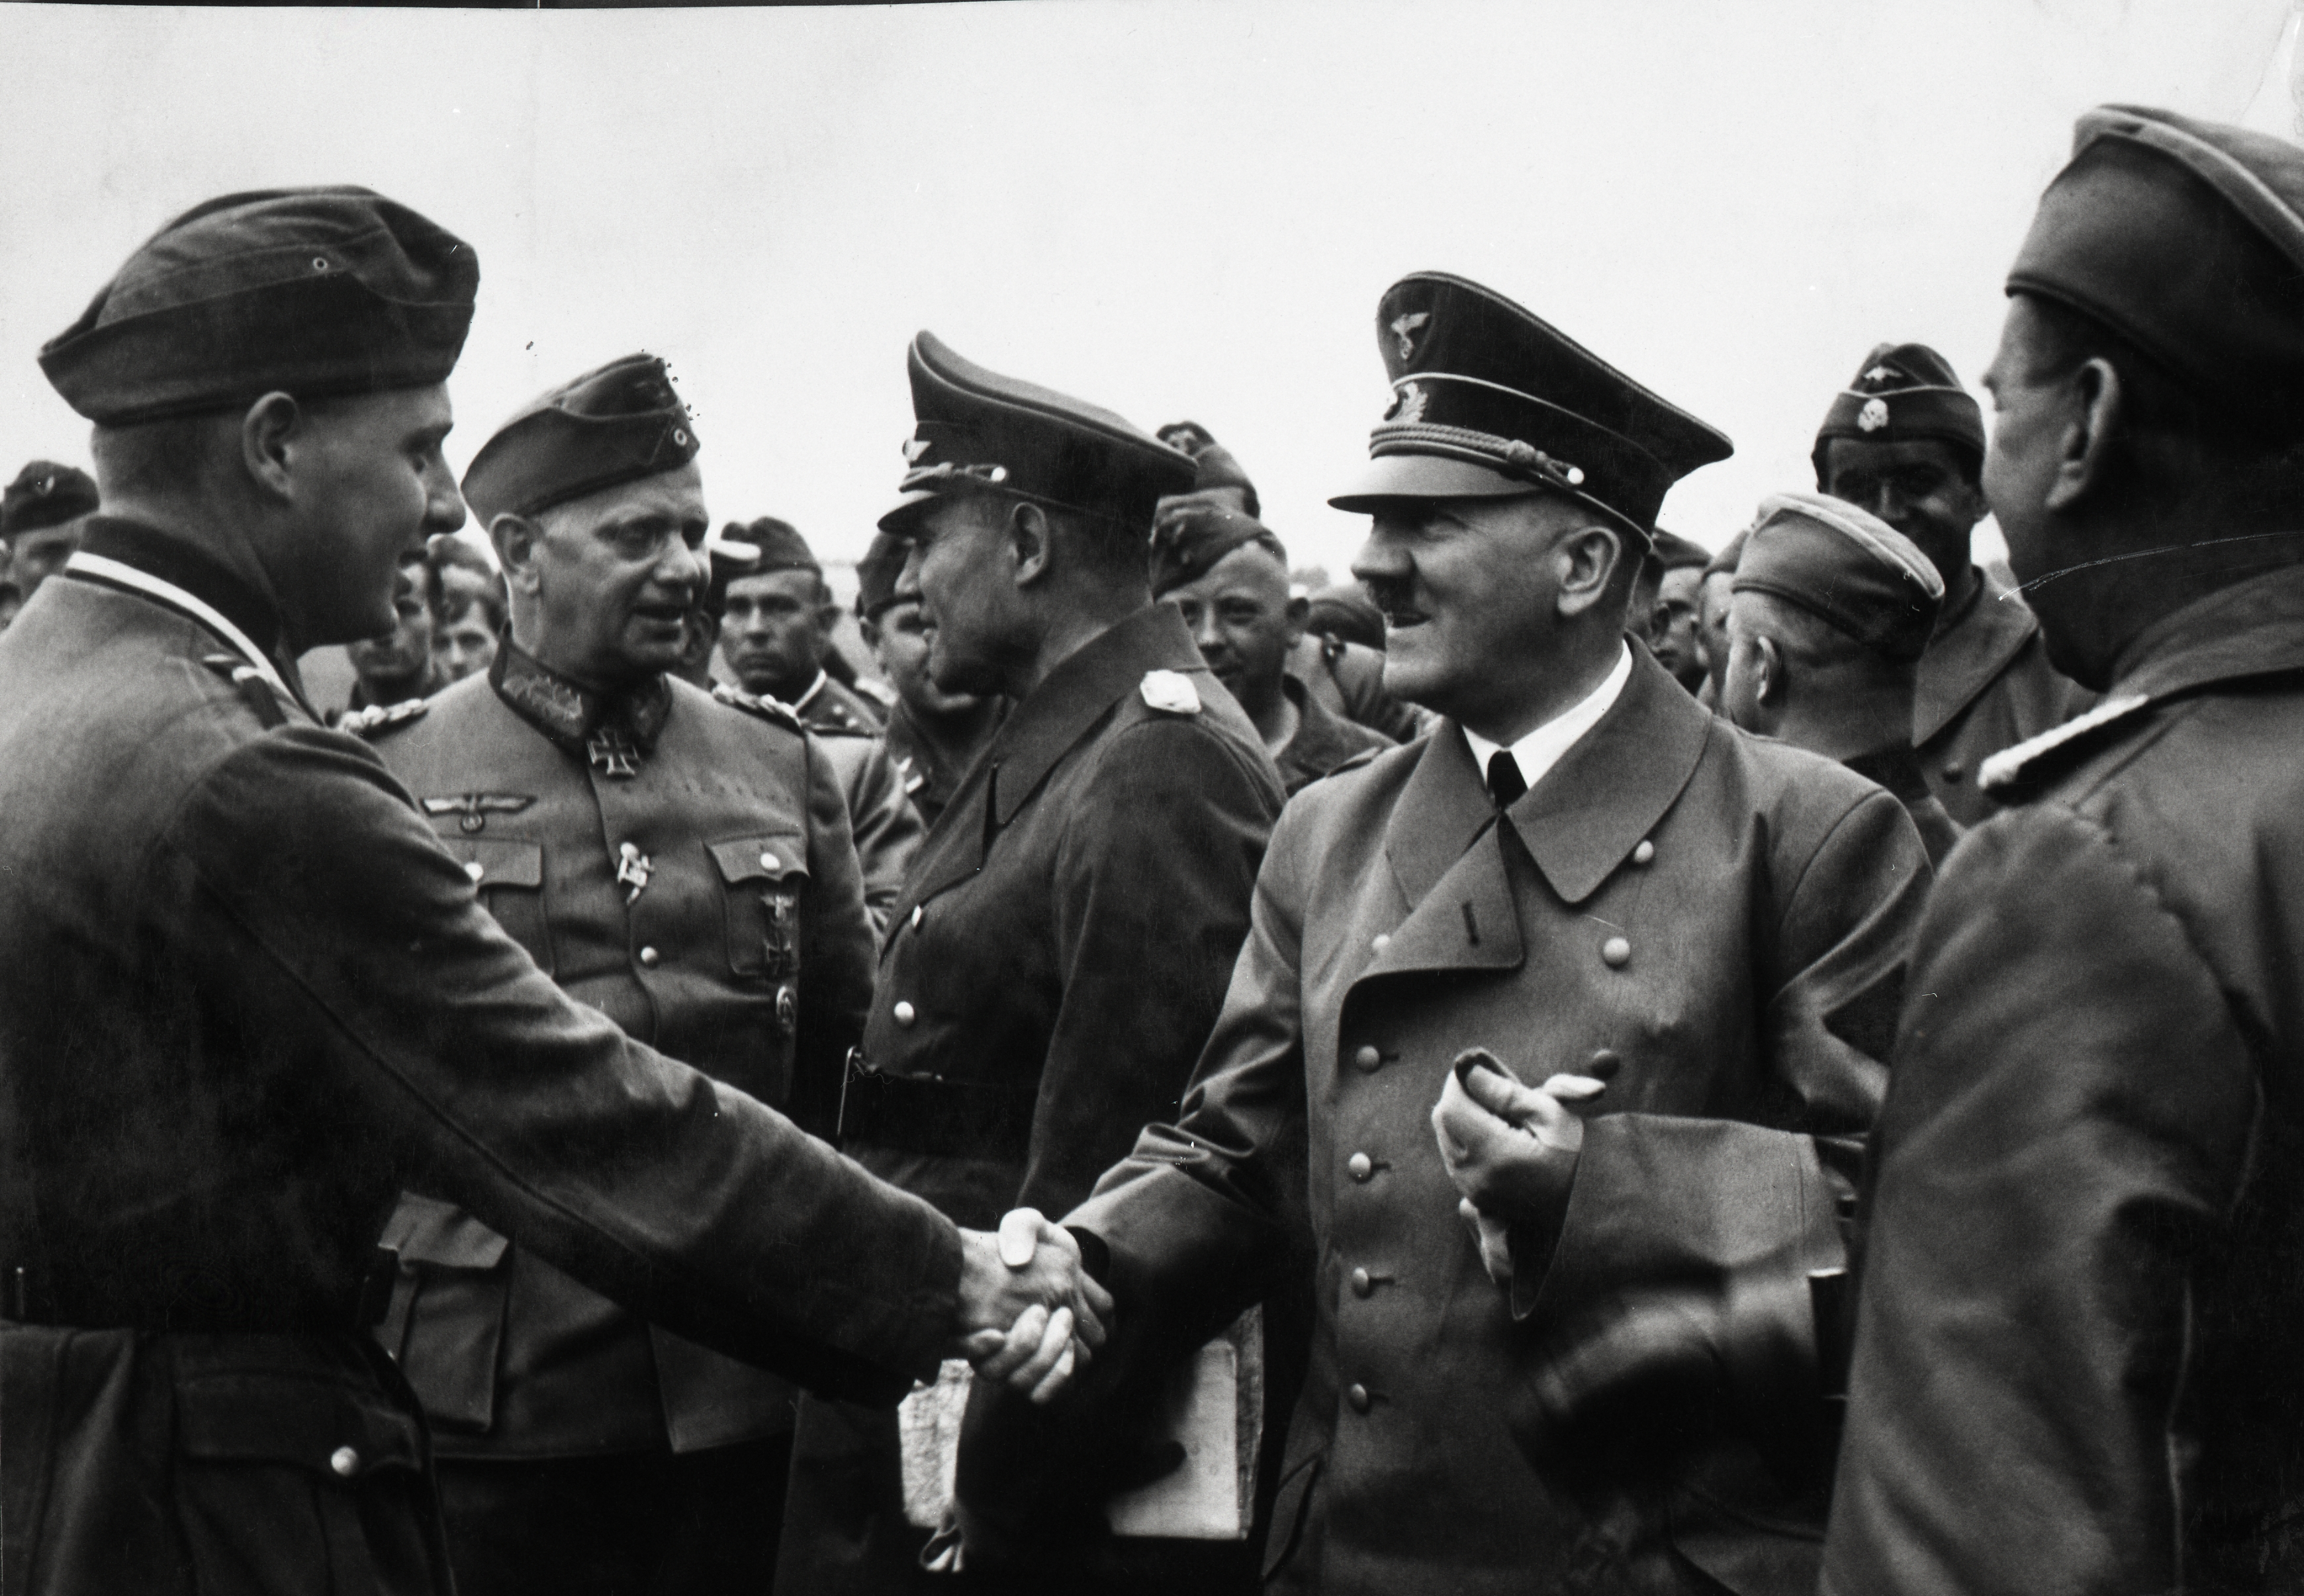 Adolf Hitler meeting a Special Officer of a propaganda company, from Eva Braun's albums